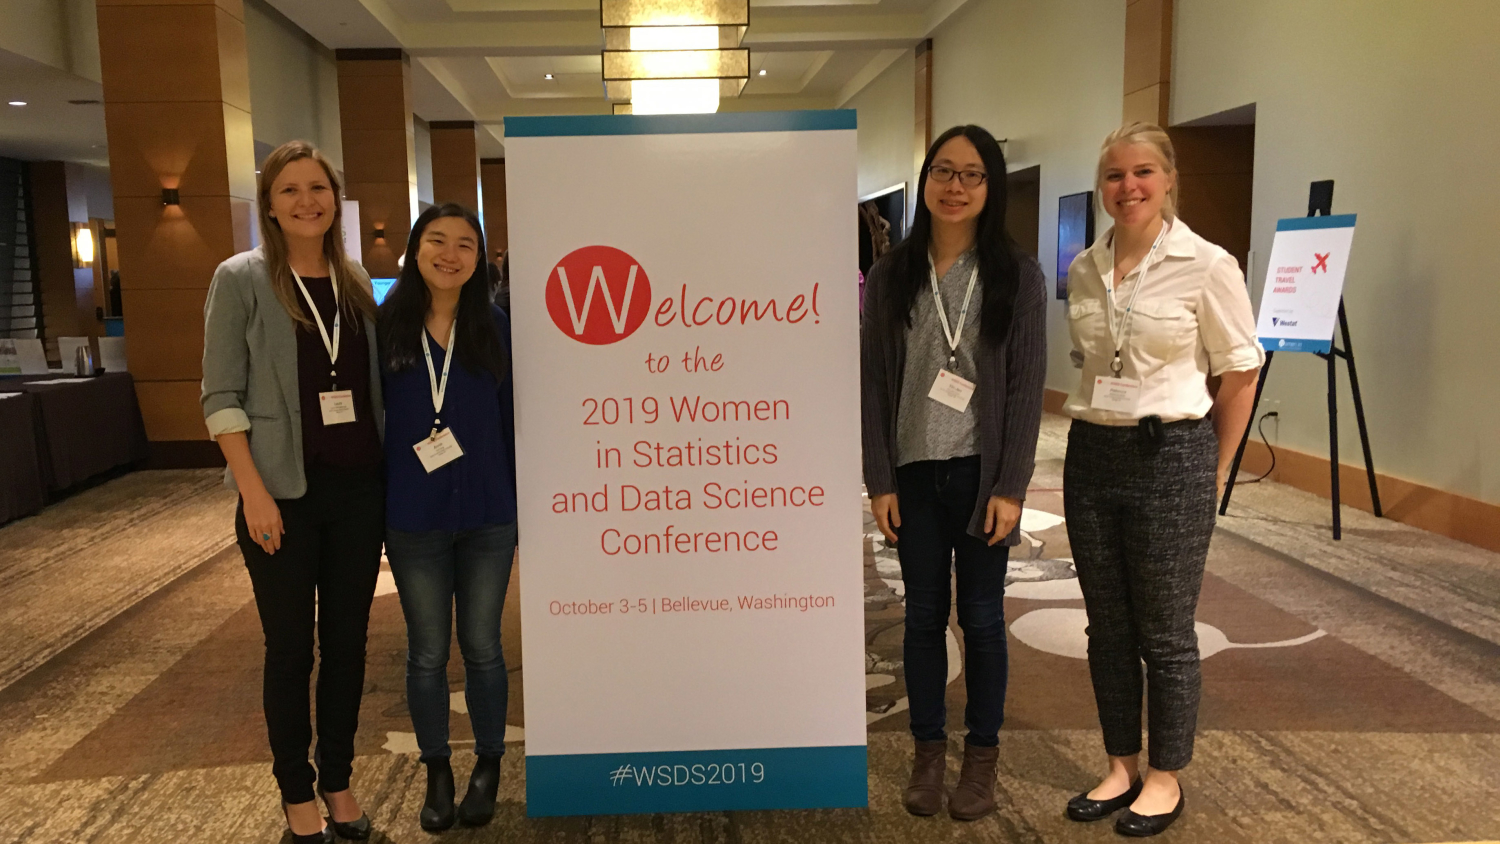 Four students stand on either side of a banner at the 2019 Women in Statistics and Data Science Conference